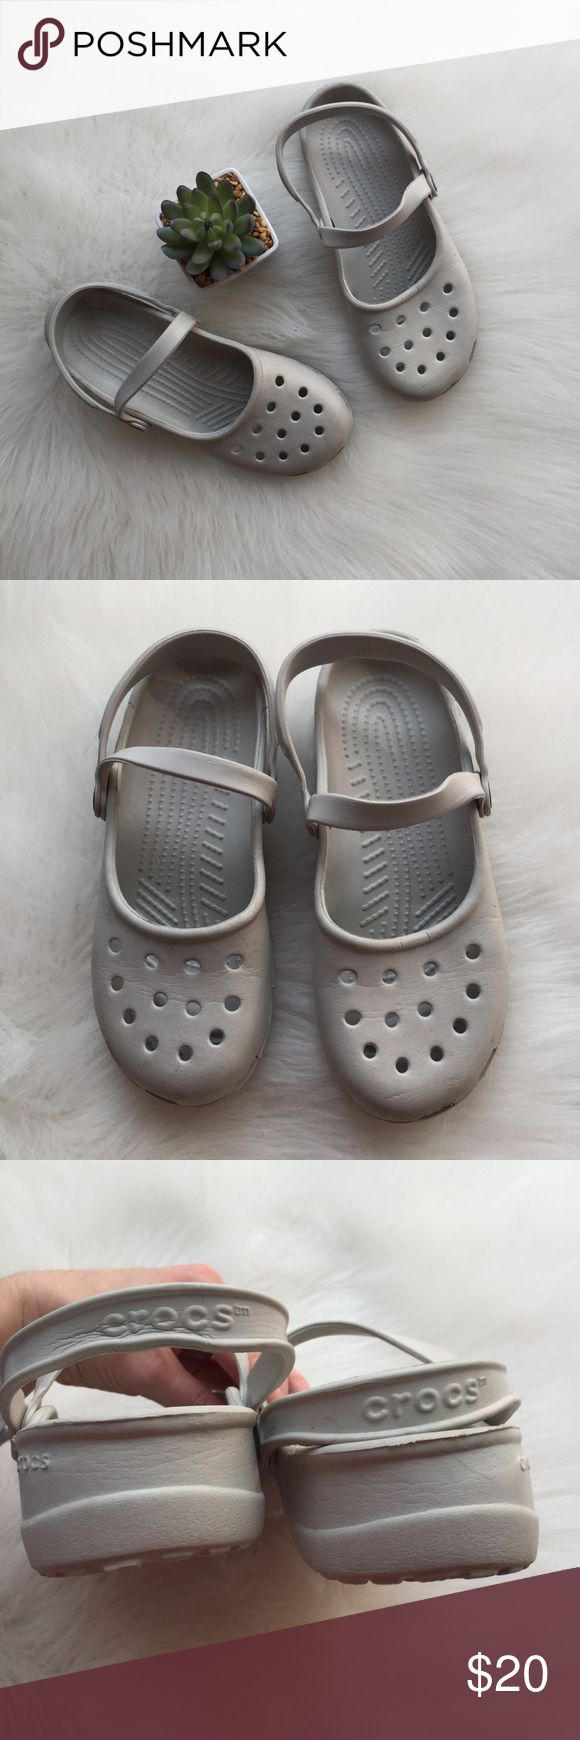 Light Grey White Crocs Light Grey White Crocs. Good condition, only worn a few times and signs of wear are just signs from being stored. Soles are in perfect condition! Bundle & save, offers welcome! CROCS Shoes Mules & Clogs